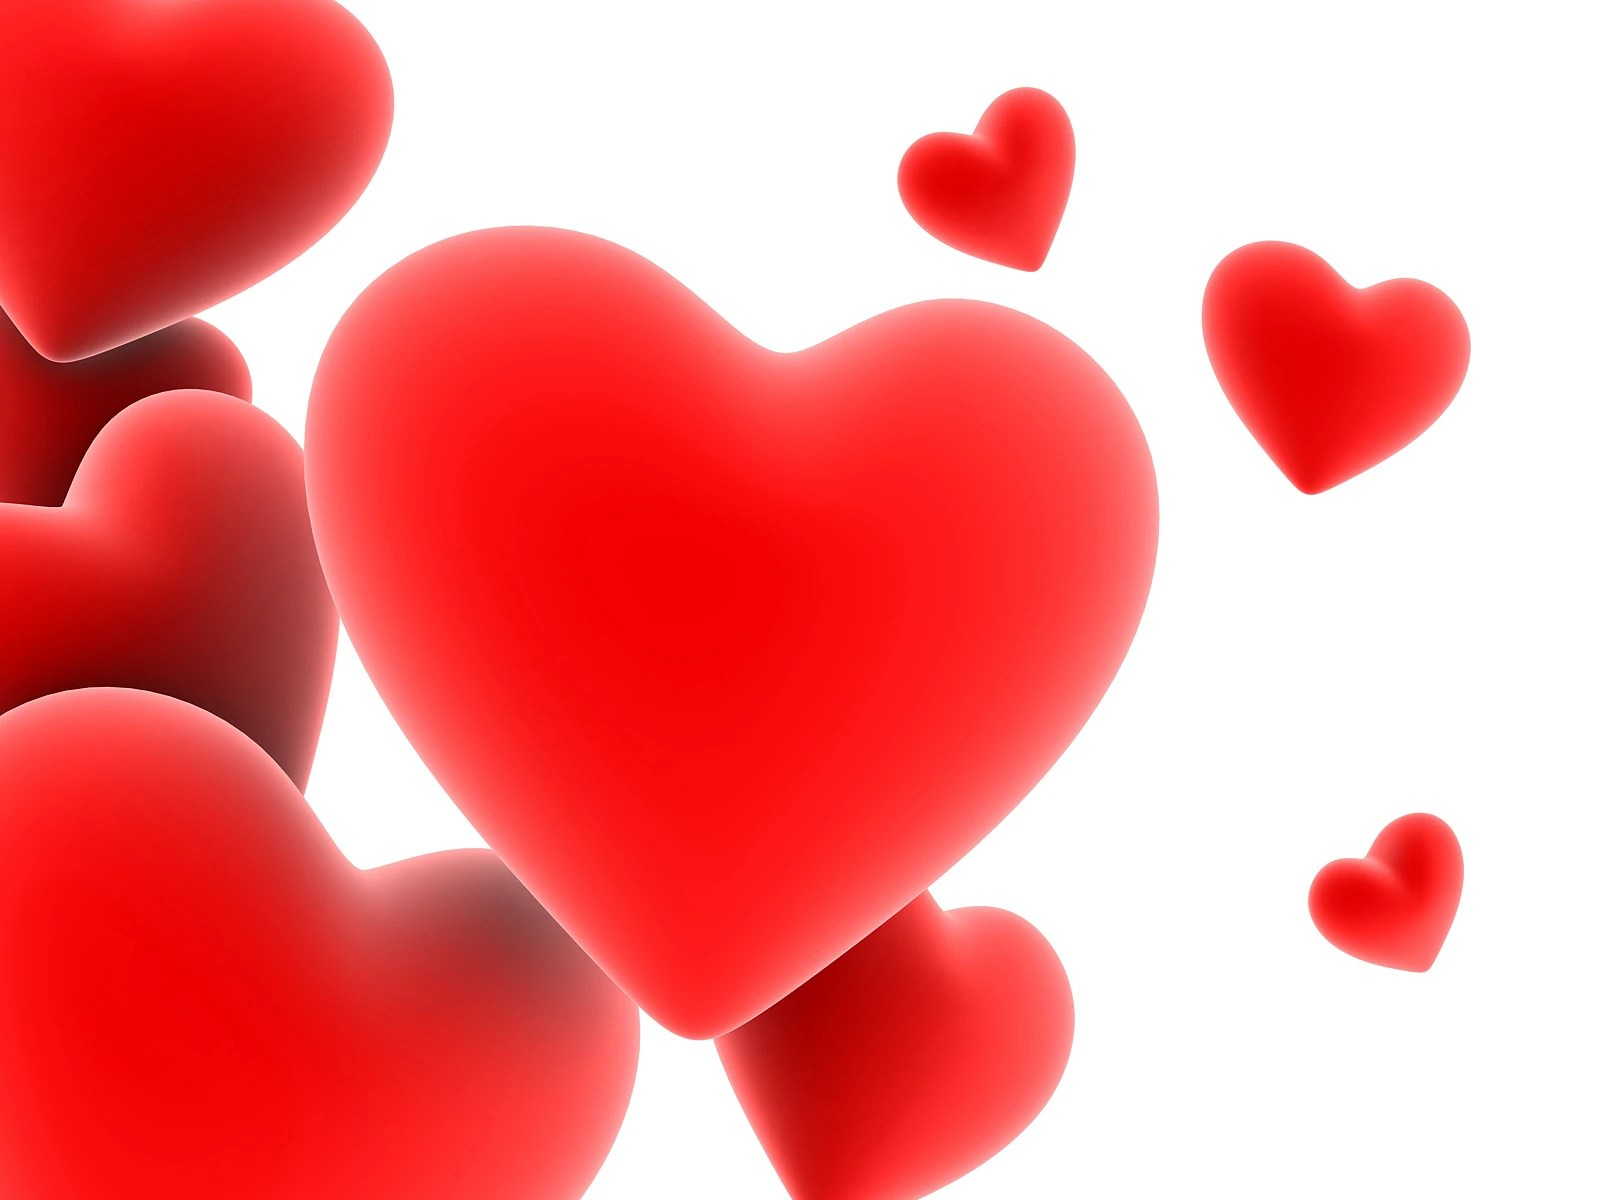 1269850209_1600x1200_floating-red-heart-wallpaper.jpg (1600×1200)